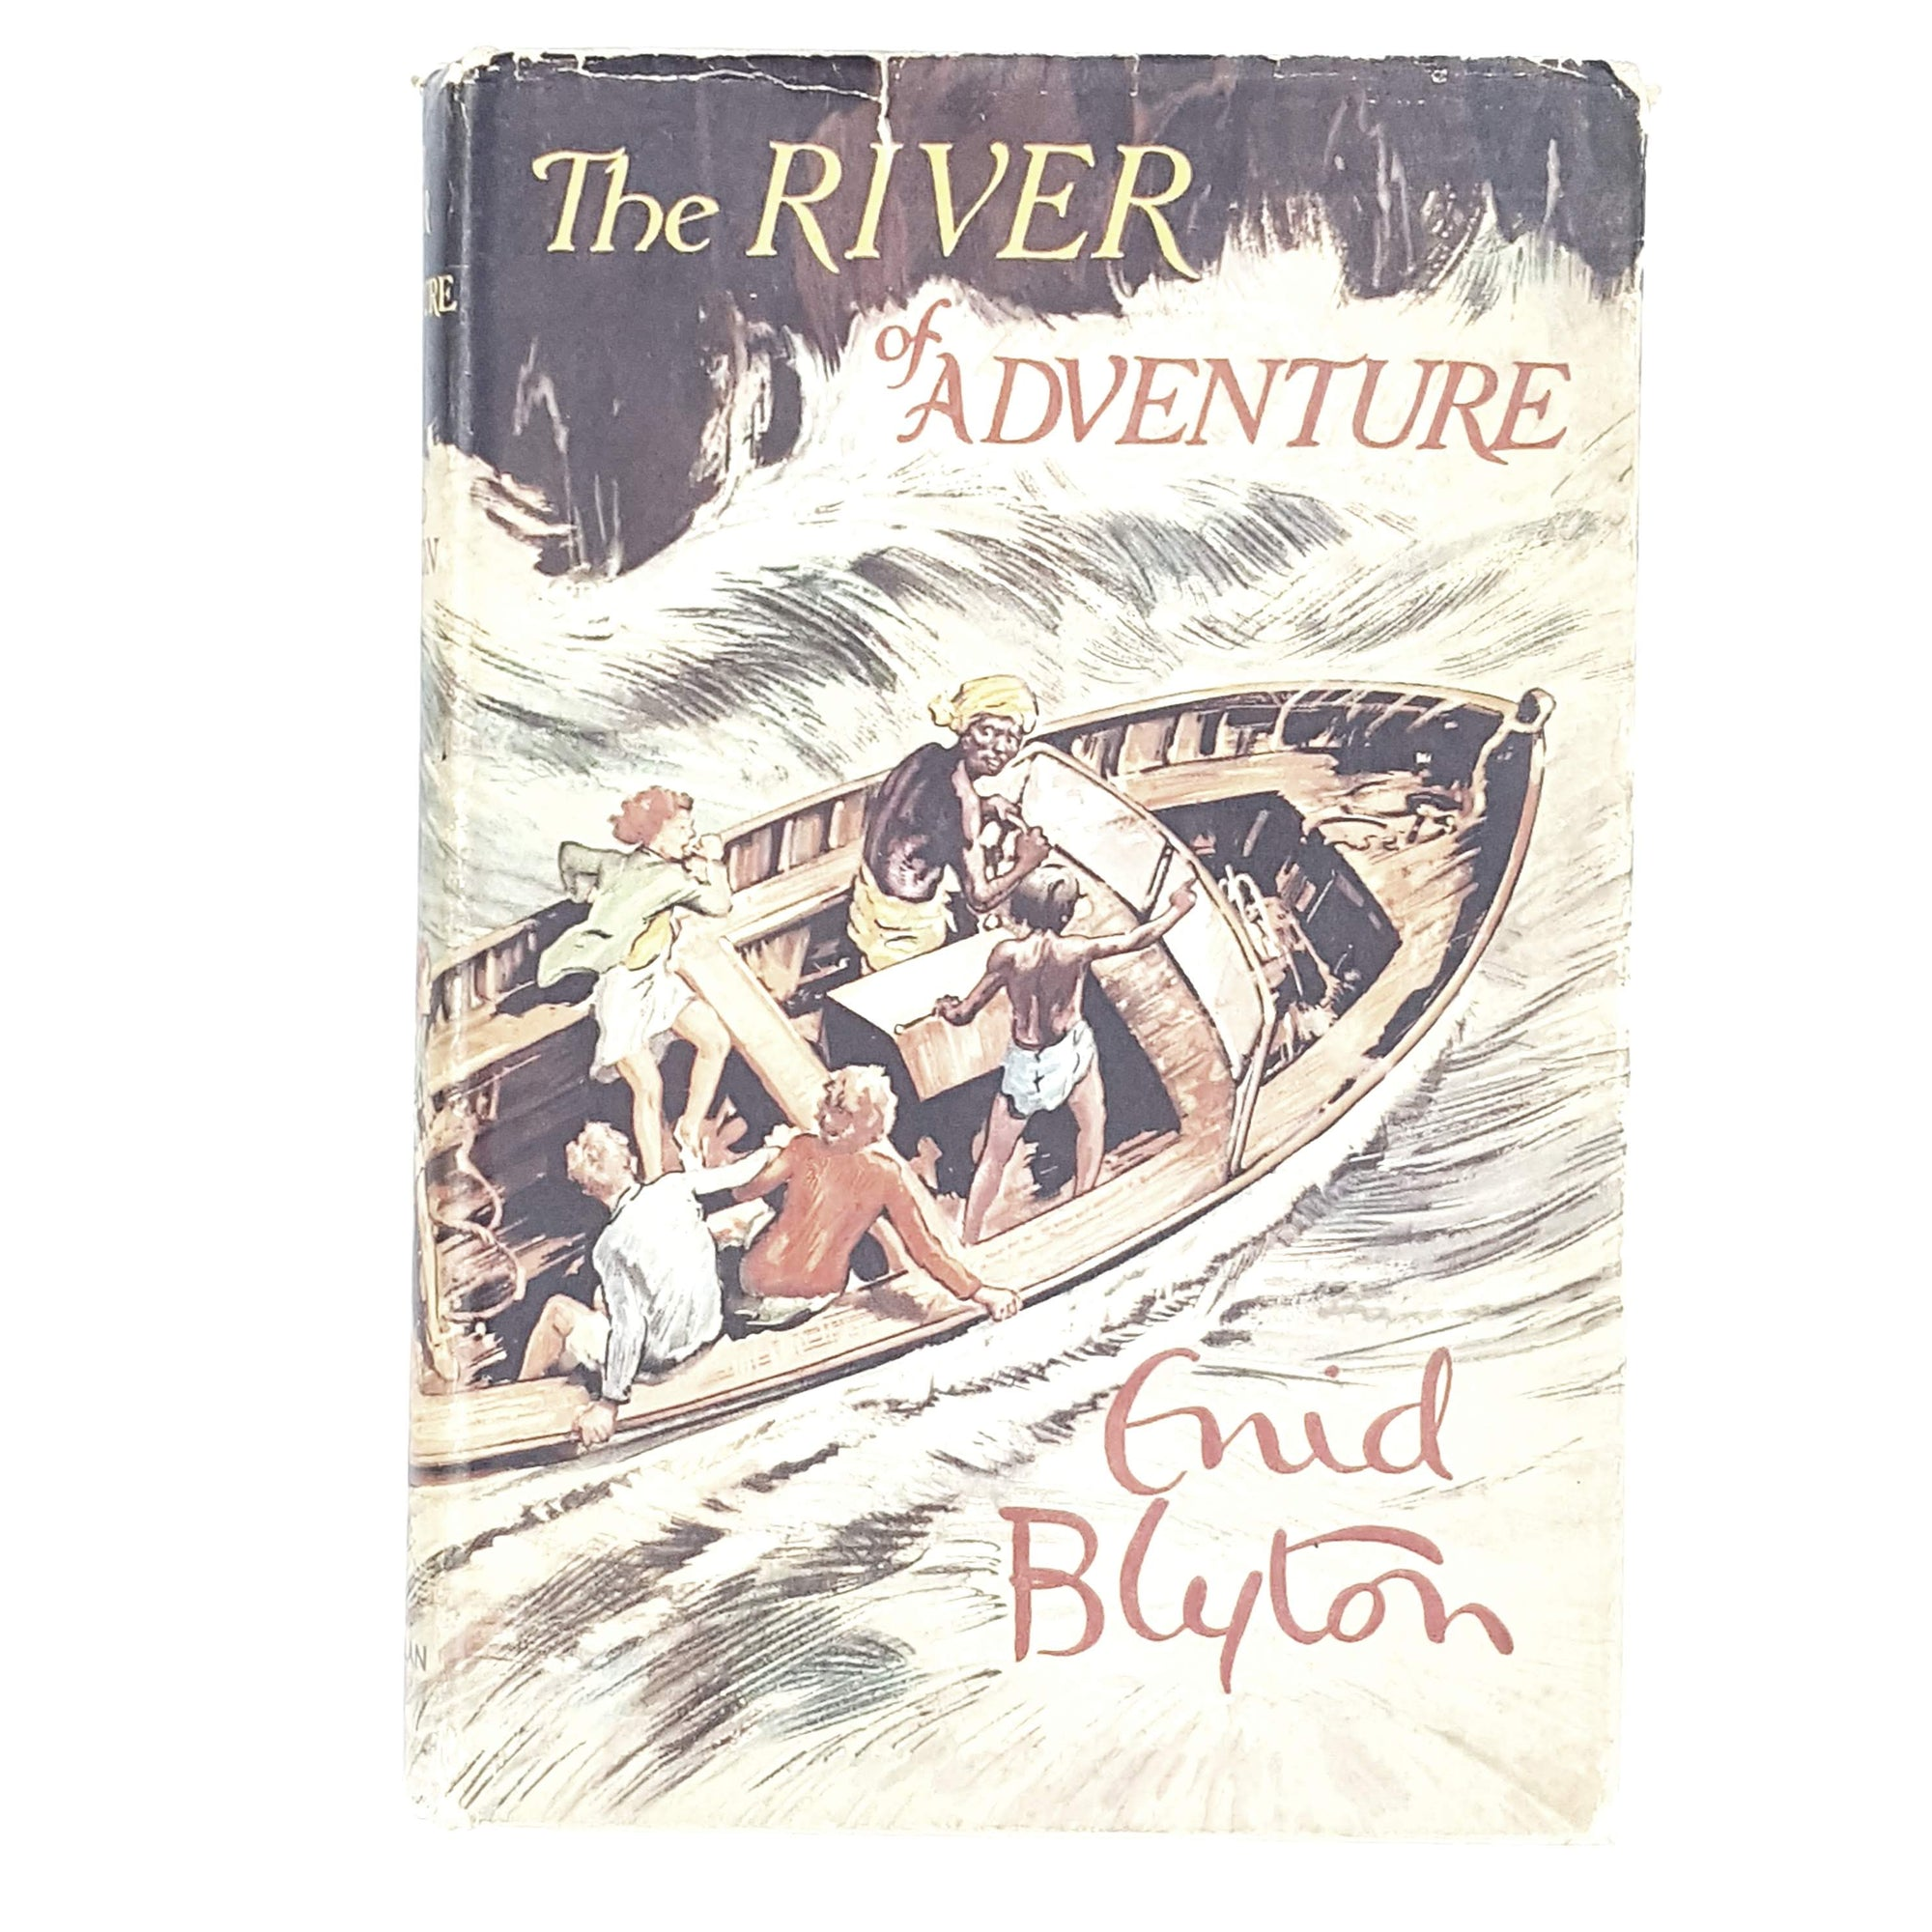 enid-blytons-the-river-of-adventure-1955-country-house-library